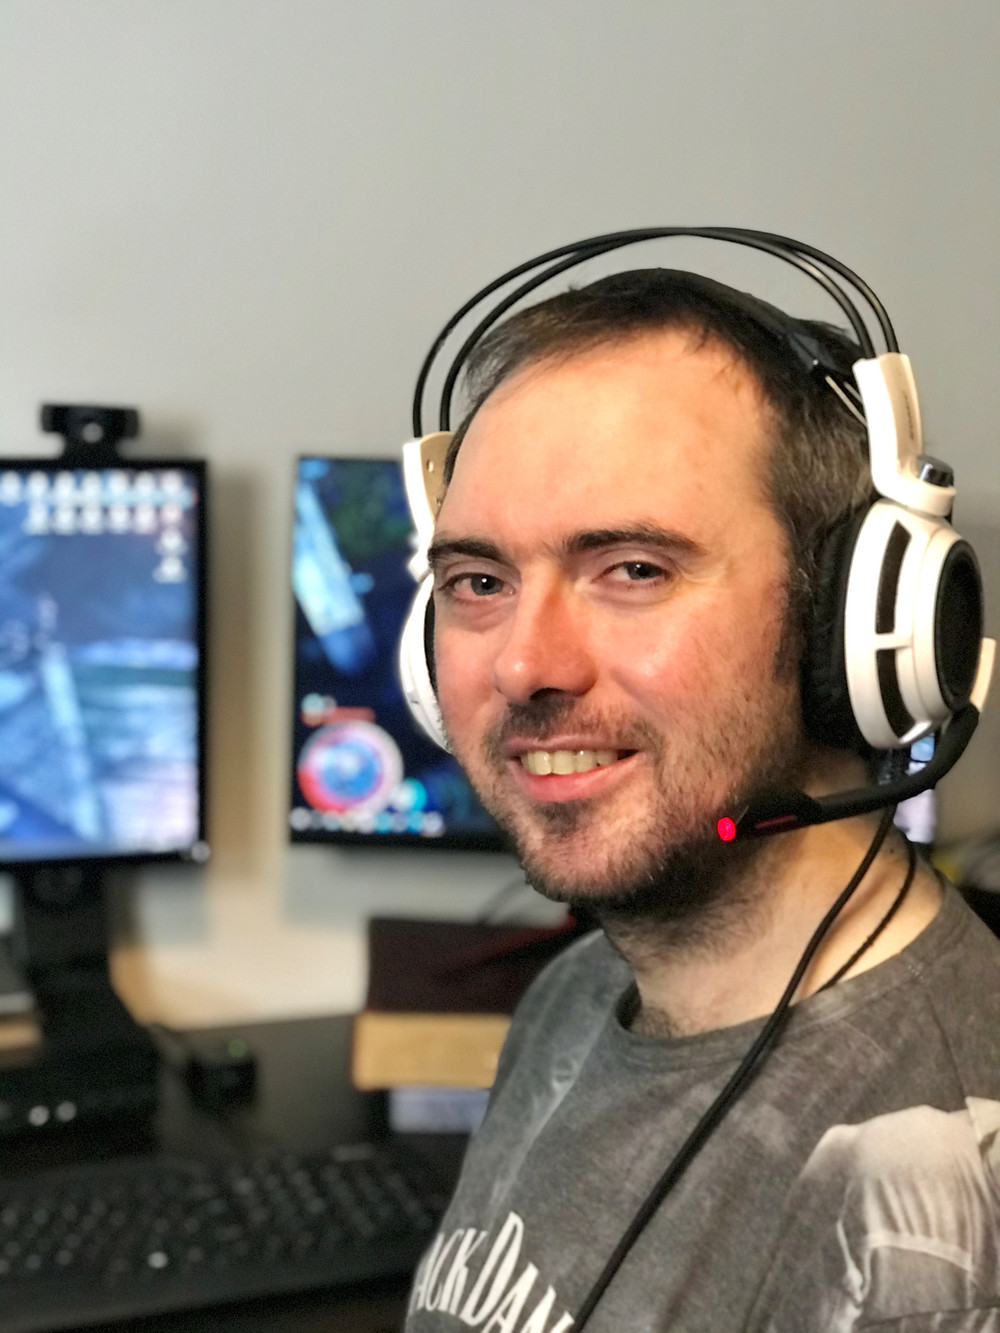 Picture of Ben James smiling at his desk in front of two pc's with his gaming headset on